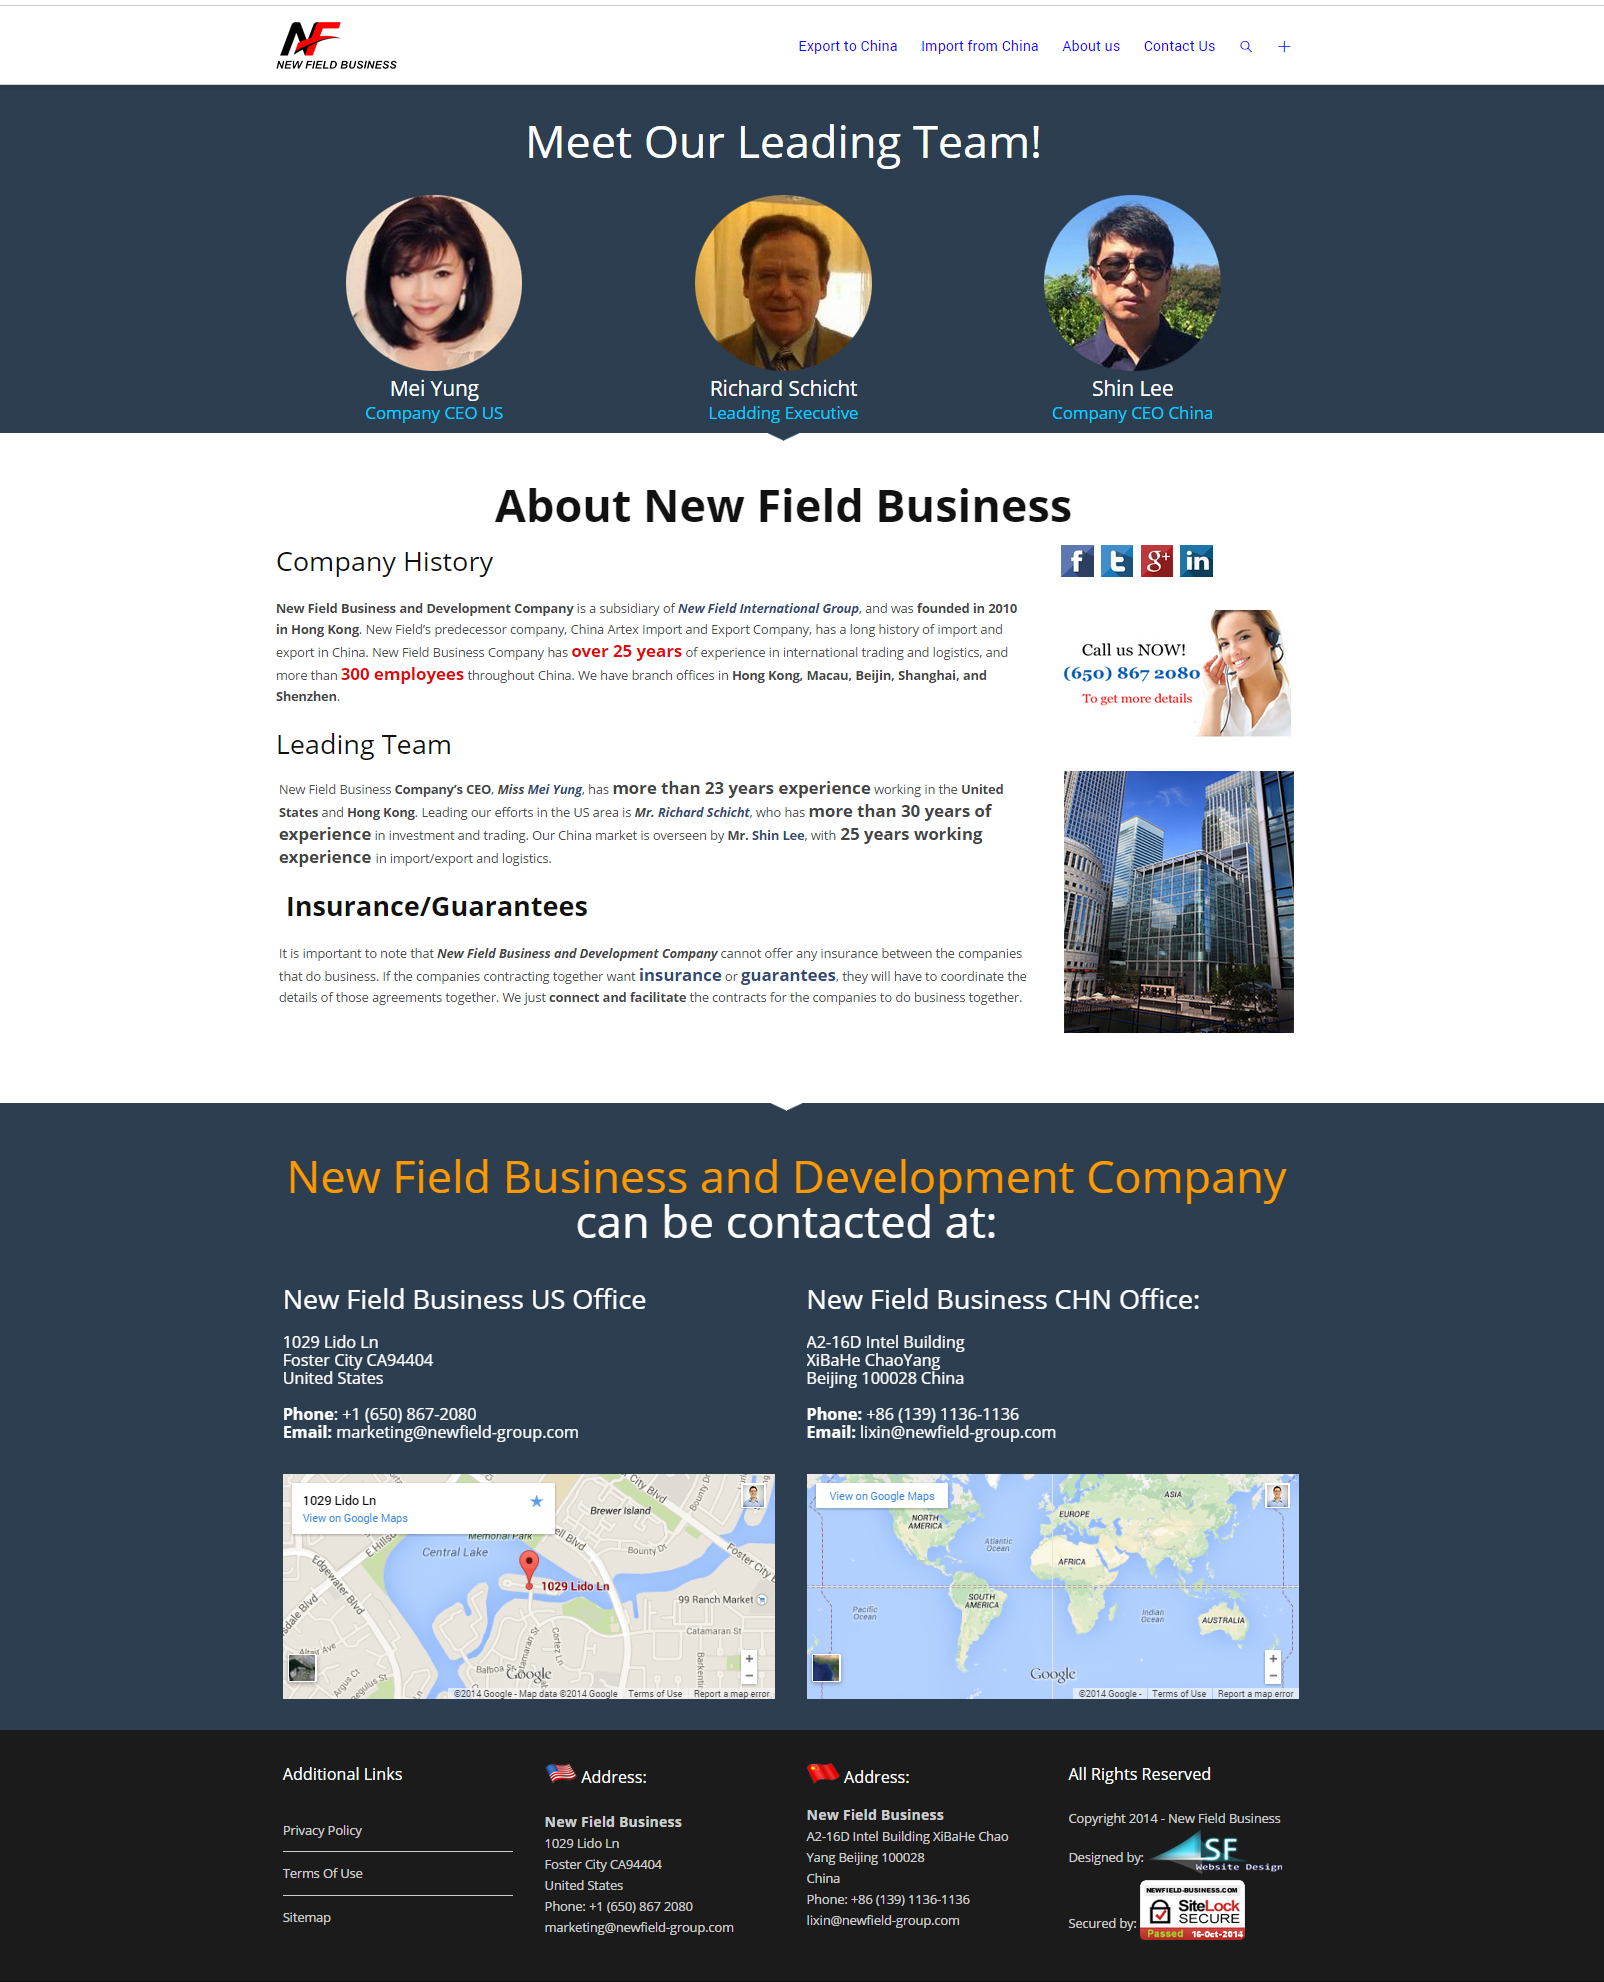 Newfield-Business-website-design-about